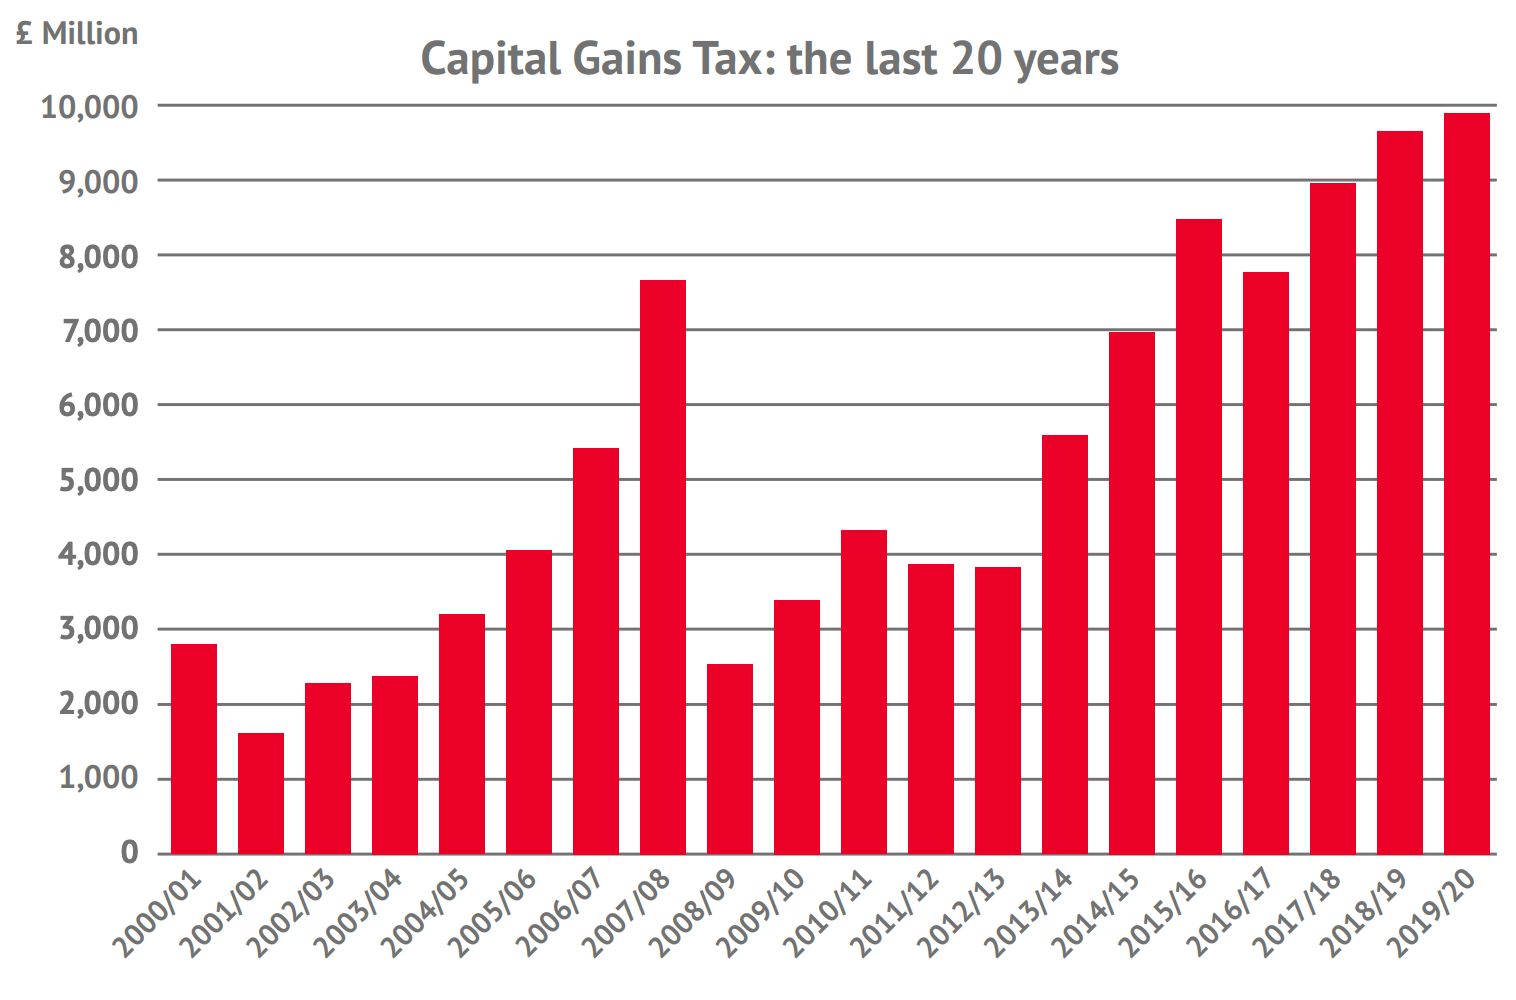 Capital gains tax the last 20 years